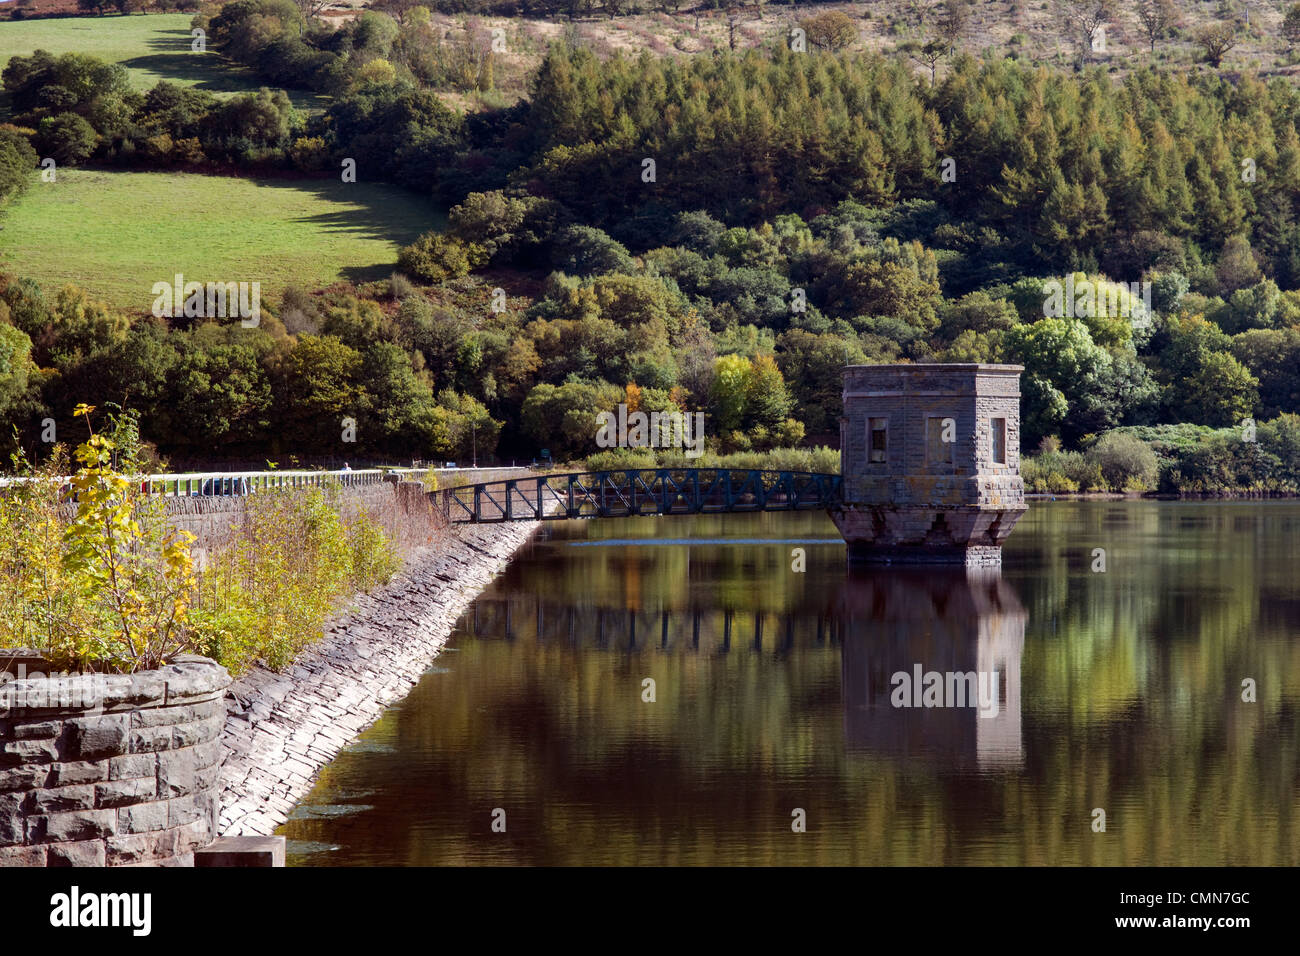 Talybont reservoir, dam and water tower with reflection at Brecon Beacons in Wales taken on beautiful bright sunny - Stock Image